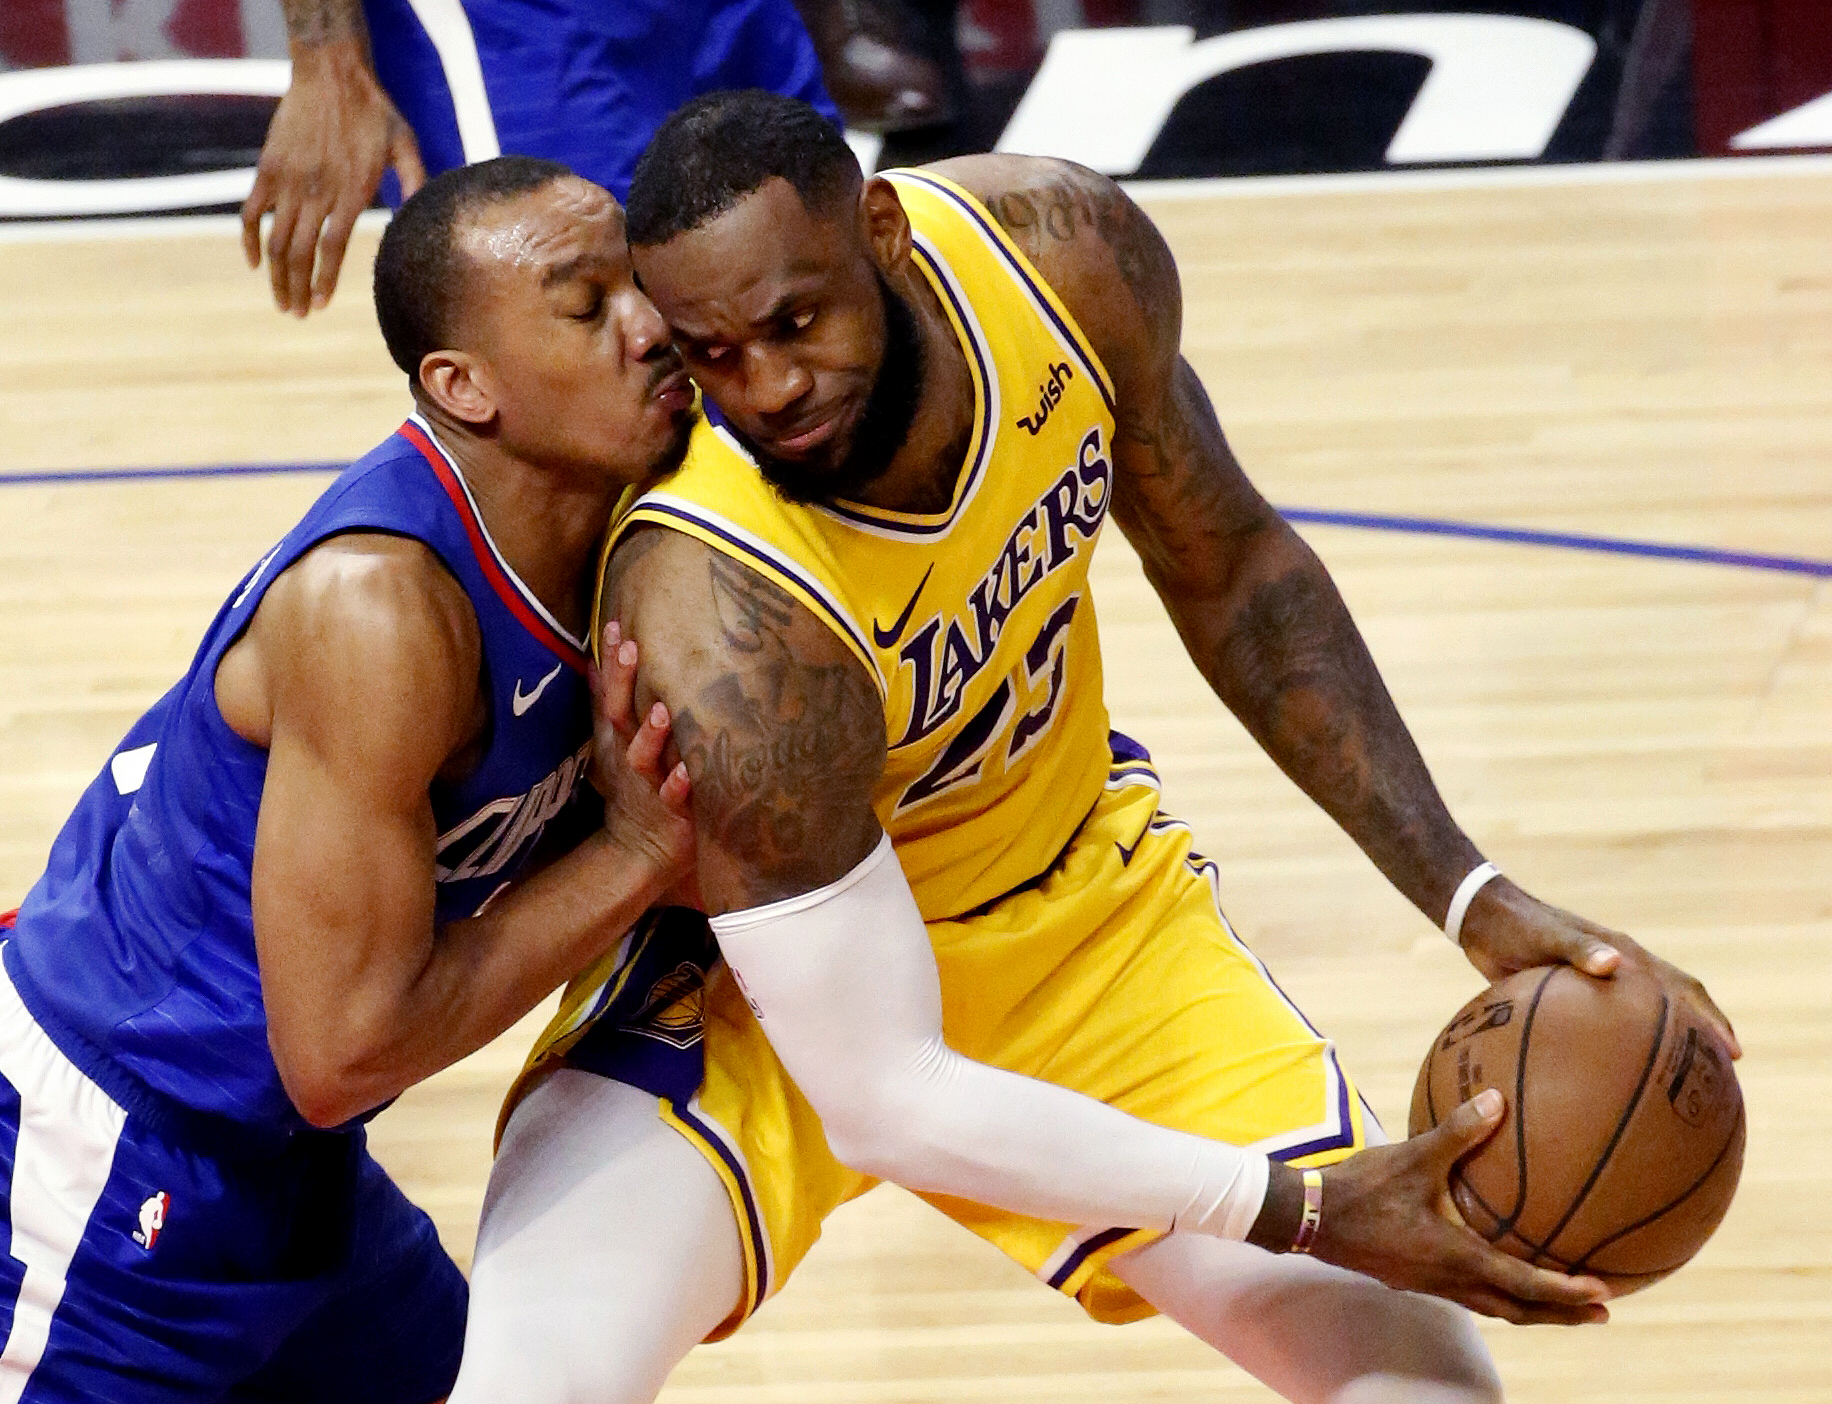 Los Angeles Clippers' Avery Bradley (11) defends on Los Angeles Lakers' LeBron James (23) during an NBA basketball game, Jan. 31, 2019, in Los Angeles.